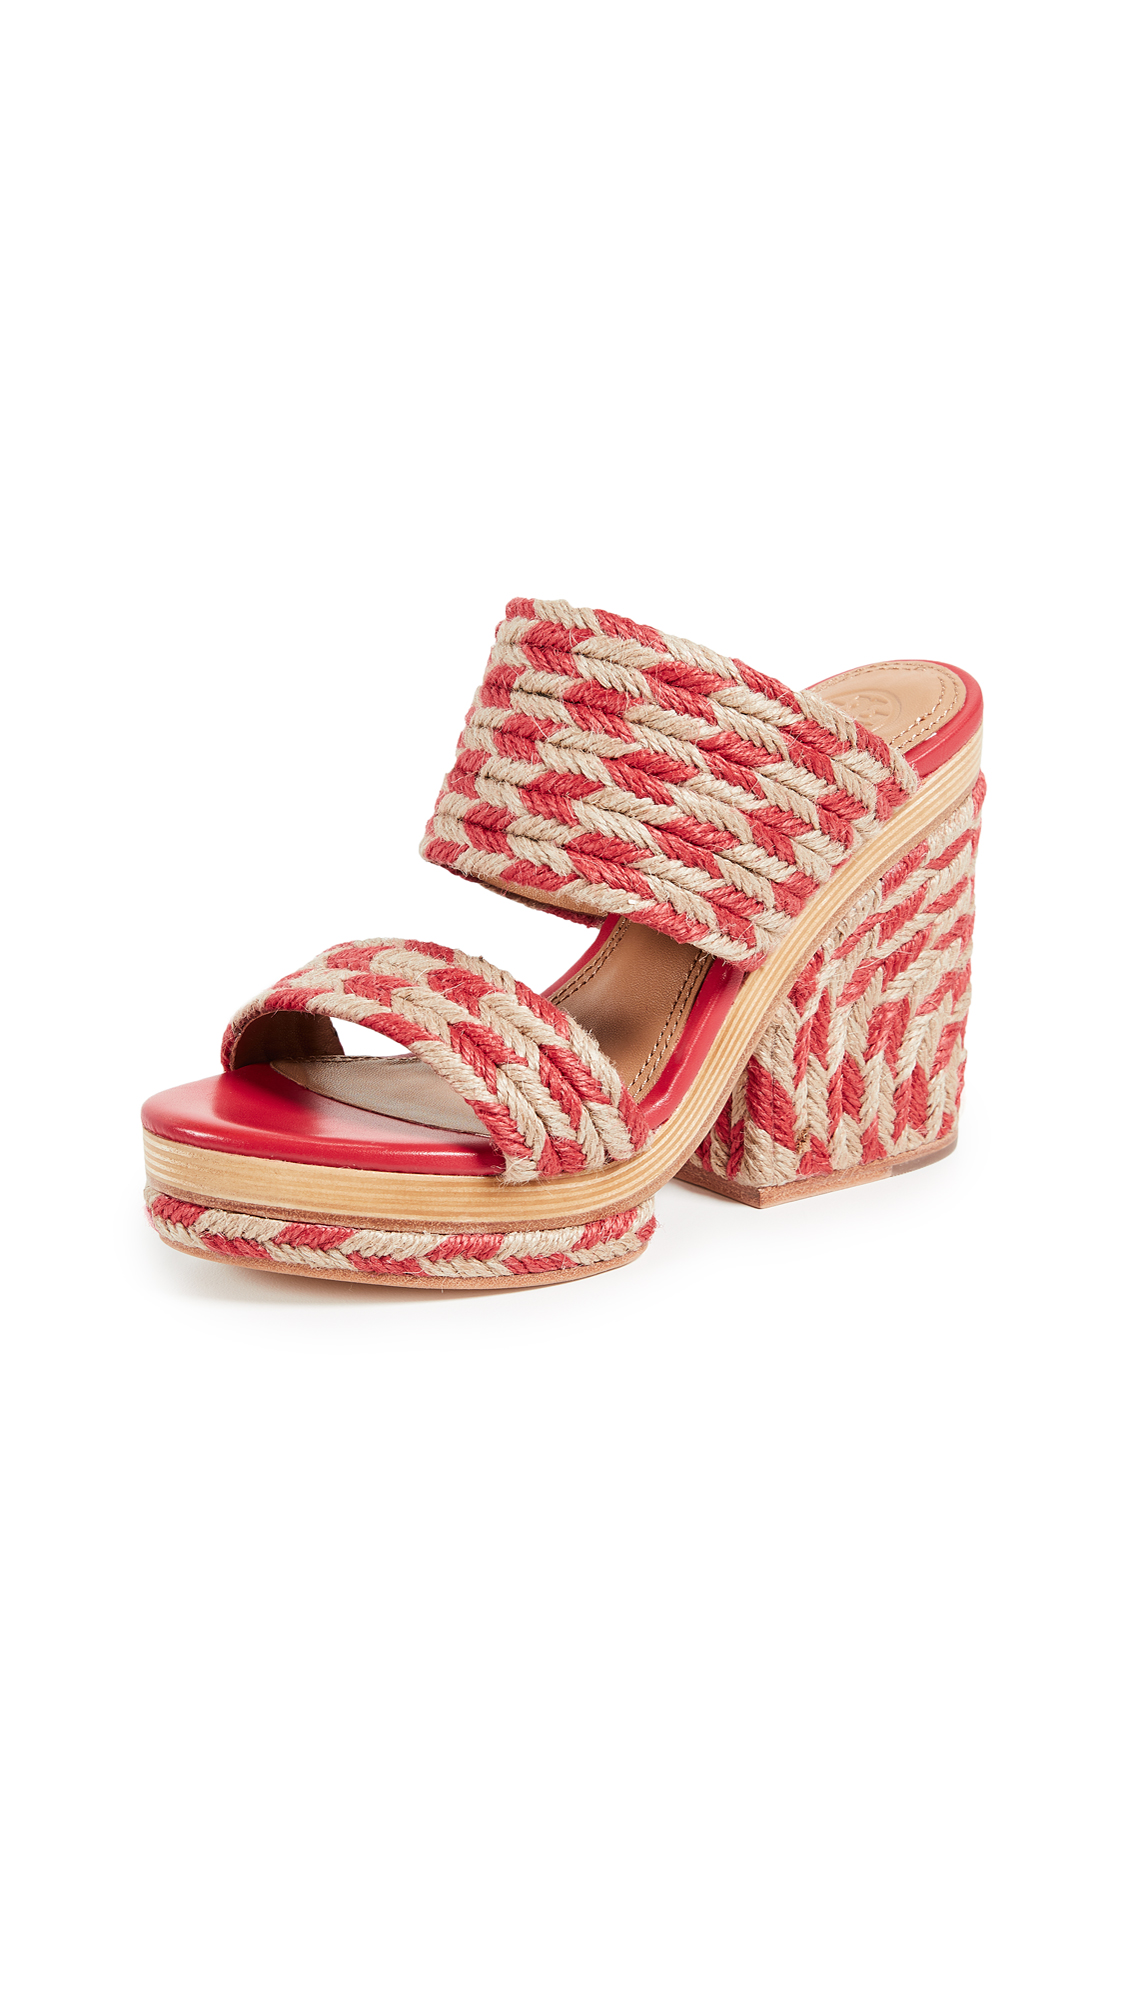 Photo of Tory Burch Lola 100mm Sandals online shoes sales